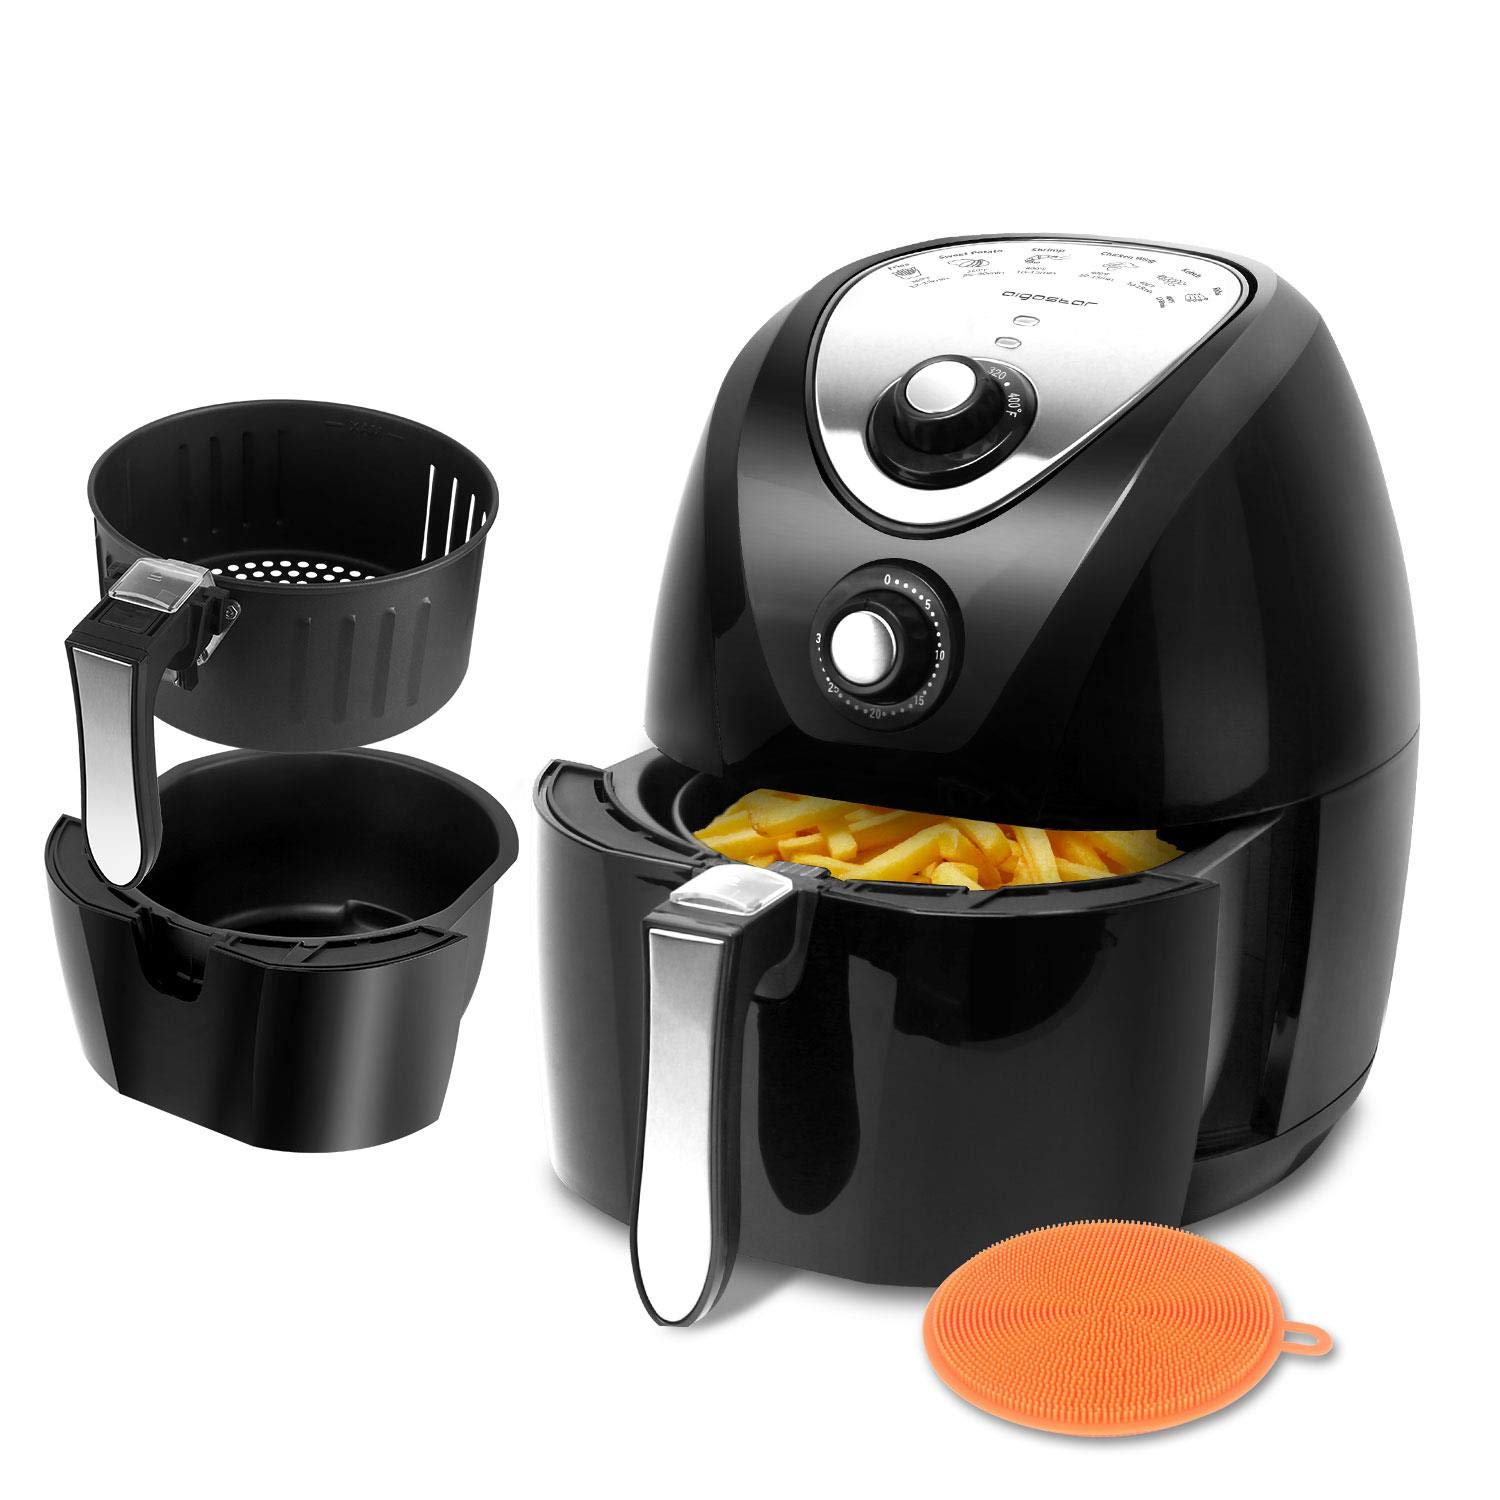 Aigostar Dragon Pro 1400W 3.4QT Air Fryer Oil Free with Rapid Air Circulation System - Non-Stick Fry Basket, Dishwasher Safe, Timer and Temperature Control For Healthy Fried Food, Black